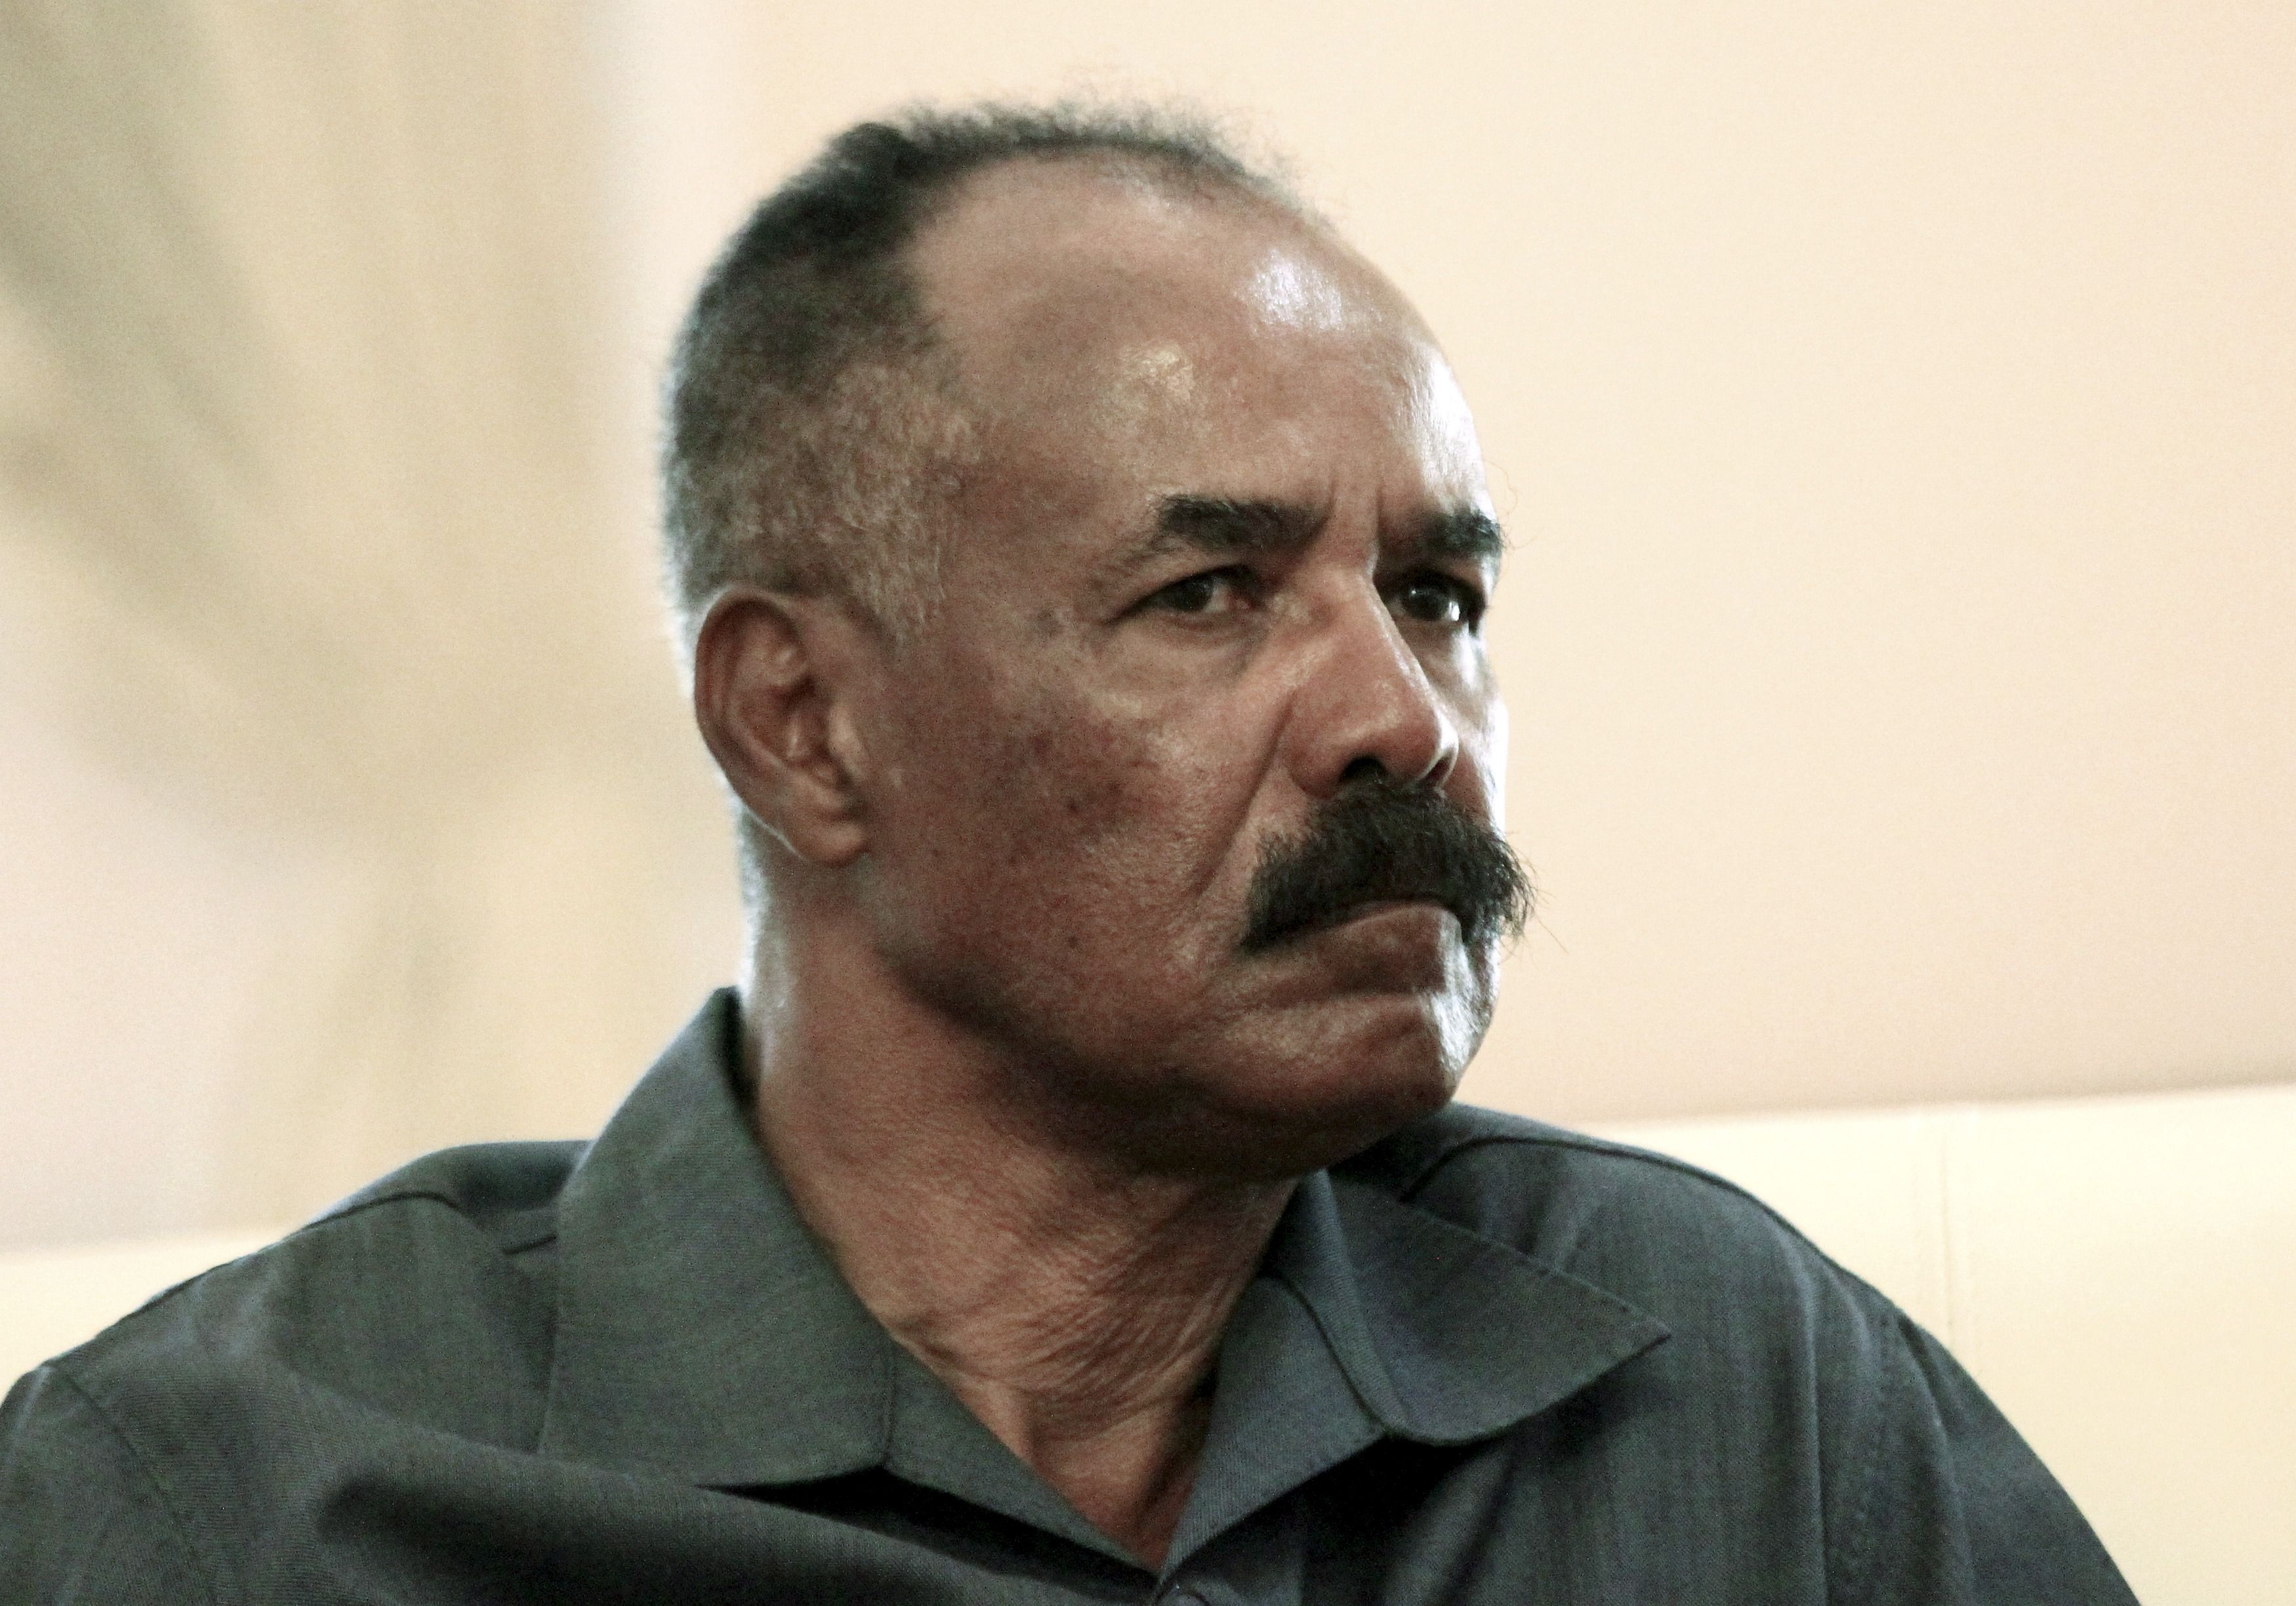 Eritrea's president Isaias Afwerki listens as he meets with Sudan's President Omar al-Bashir during his official visit in Khartoum